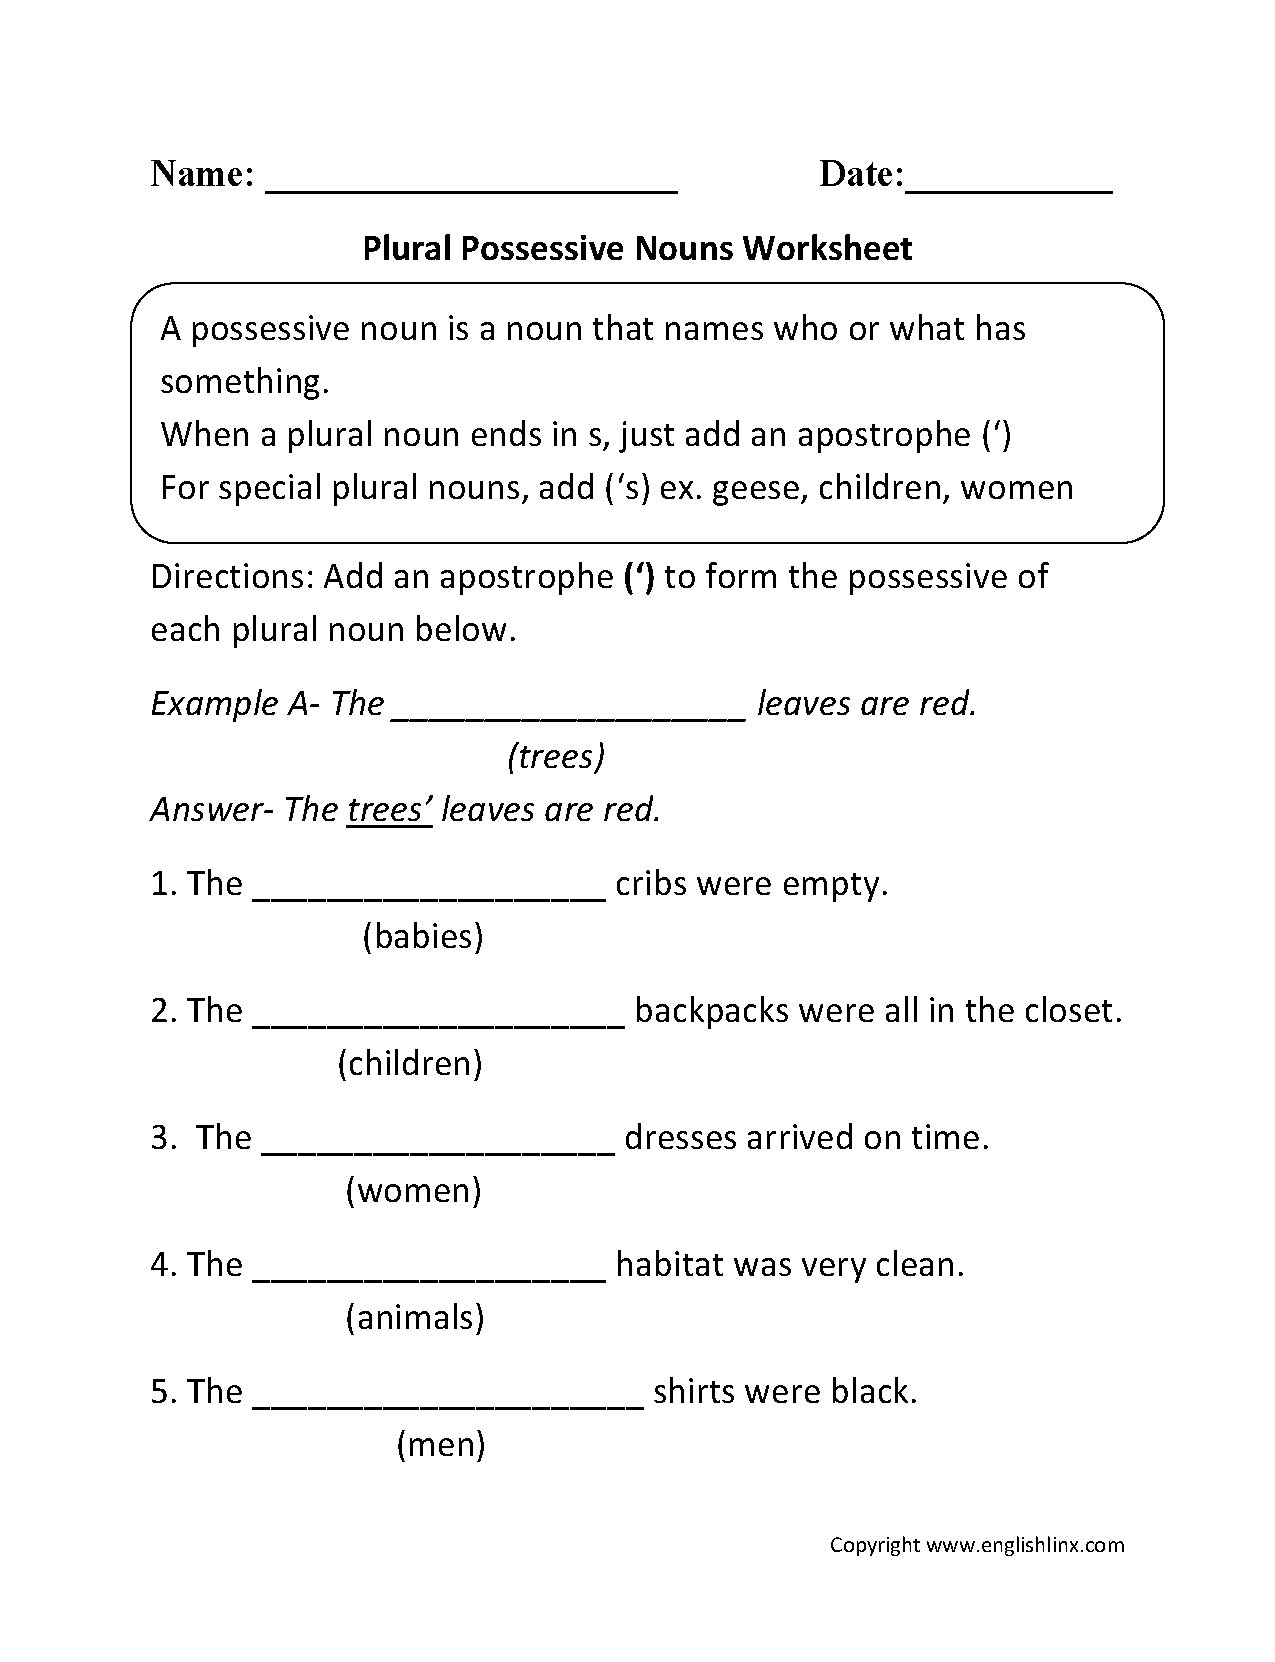 Aldiablosus  Remarkable Nouns Worksheets  Possessive Nouns Worksheets With Exciting Possessive Nouns Worksheets With Beauteous Thermal Energy Worksheet Also Causes Of World War  Worksheet Answers In Addition Chemfiesta Balancing Equations Worksheet And Combination Circuits Worksheet As Well As Variable Expressions Worksheet Additionally Latin Worksheets From Englishlinxcom With Aldiablosus  Exciting Nouns Worksheets  Possessive Nouns Worksheets With Beauteous Possessive Nouns Worksheets And Remarkable Thermal Energy Worksheet Also Causes Of World War  Worksheet Answers In Addition Chemfiesta Balancing Equations Worksheet From Englishlinxcom